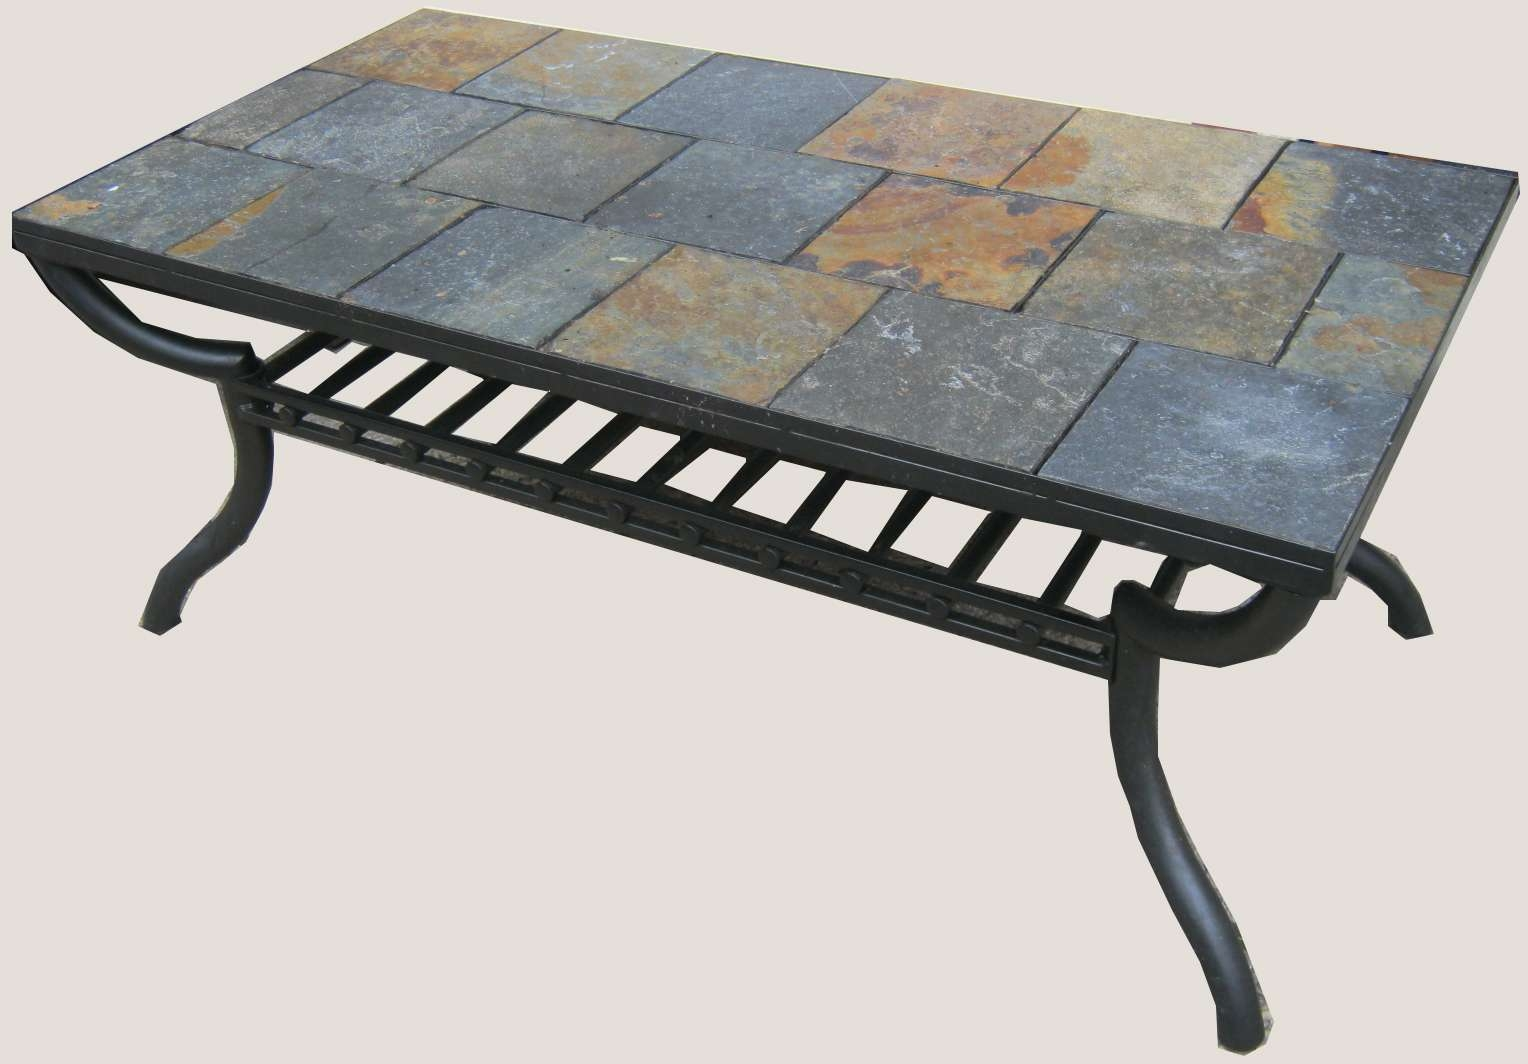 Ashley Furniture Coffee Table With Tile